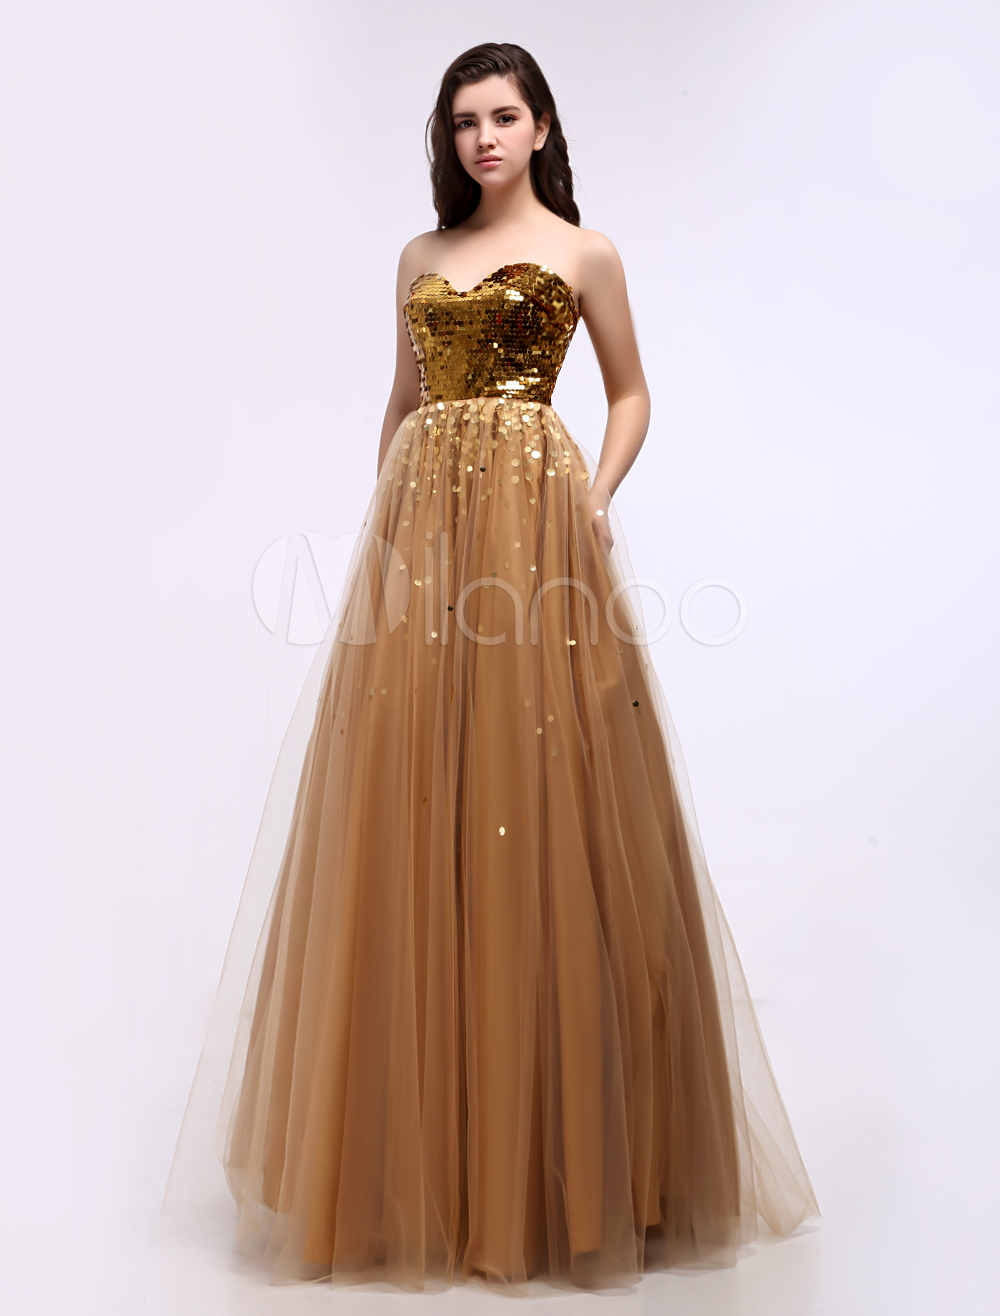 Golden Sweetheart Floor-Length Prom Dress with Sequined ...